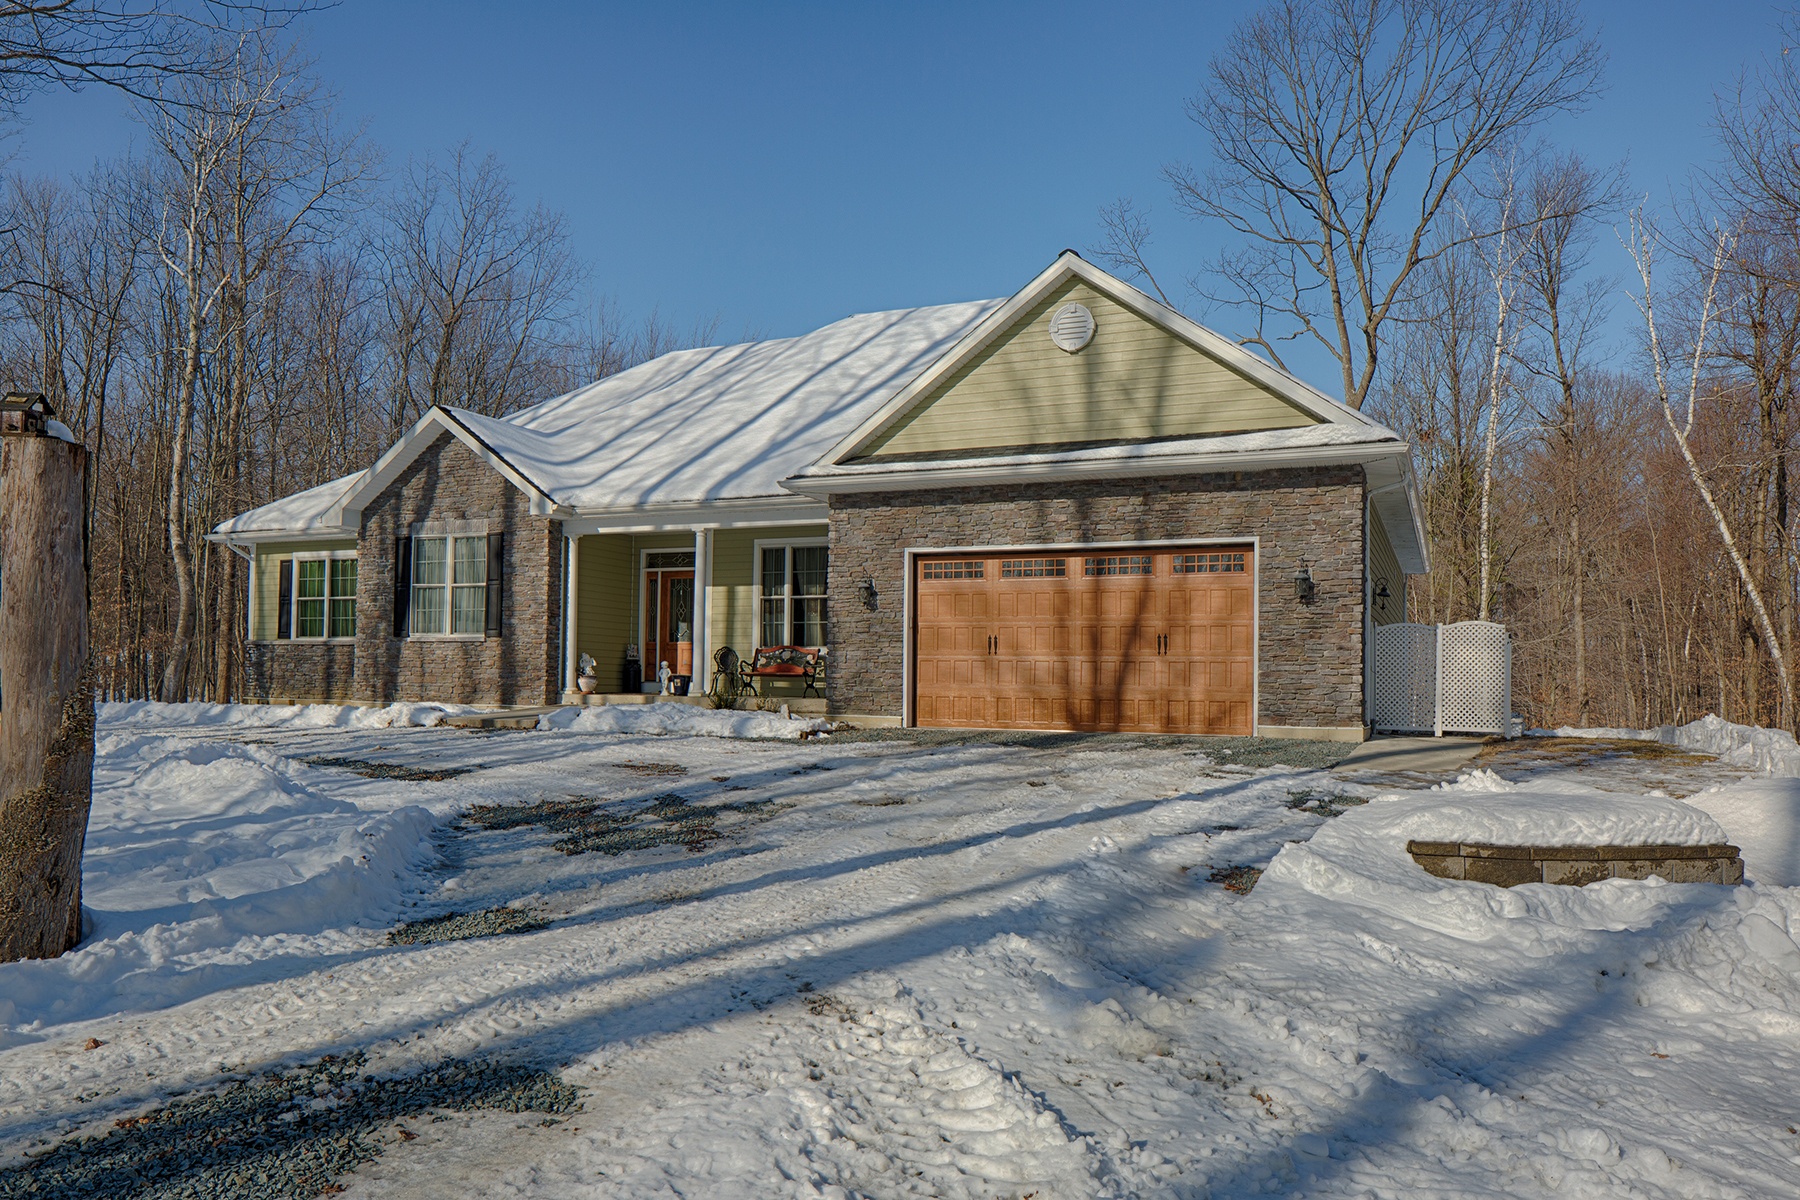 Single Family Home for Sale at Custom Built, Elegantly Detailed Home 8 Chipmunk Ct Schaghticoke, New York 12154 United States